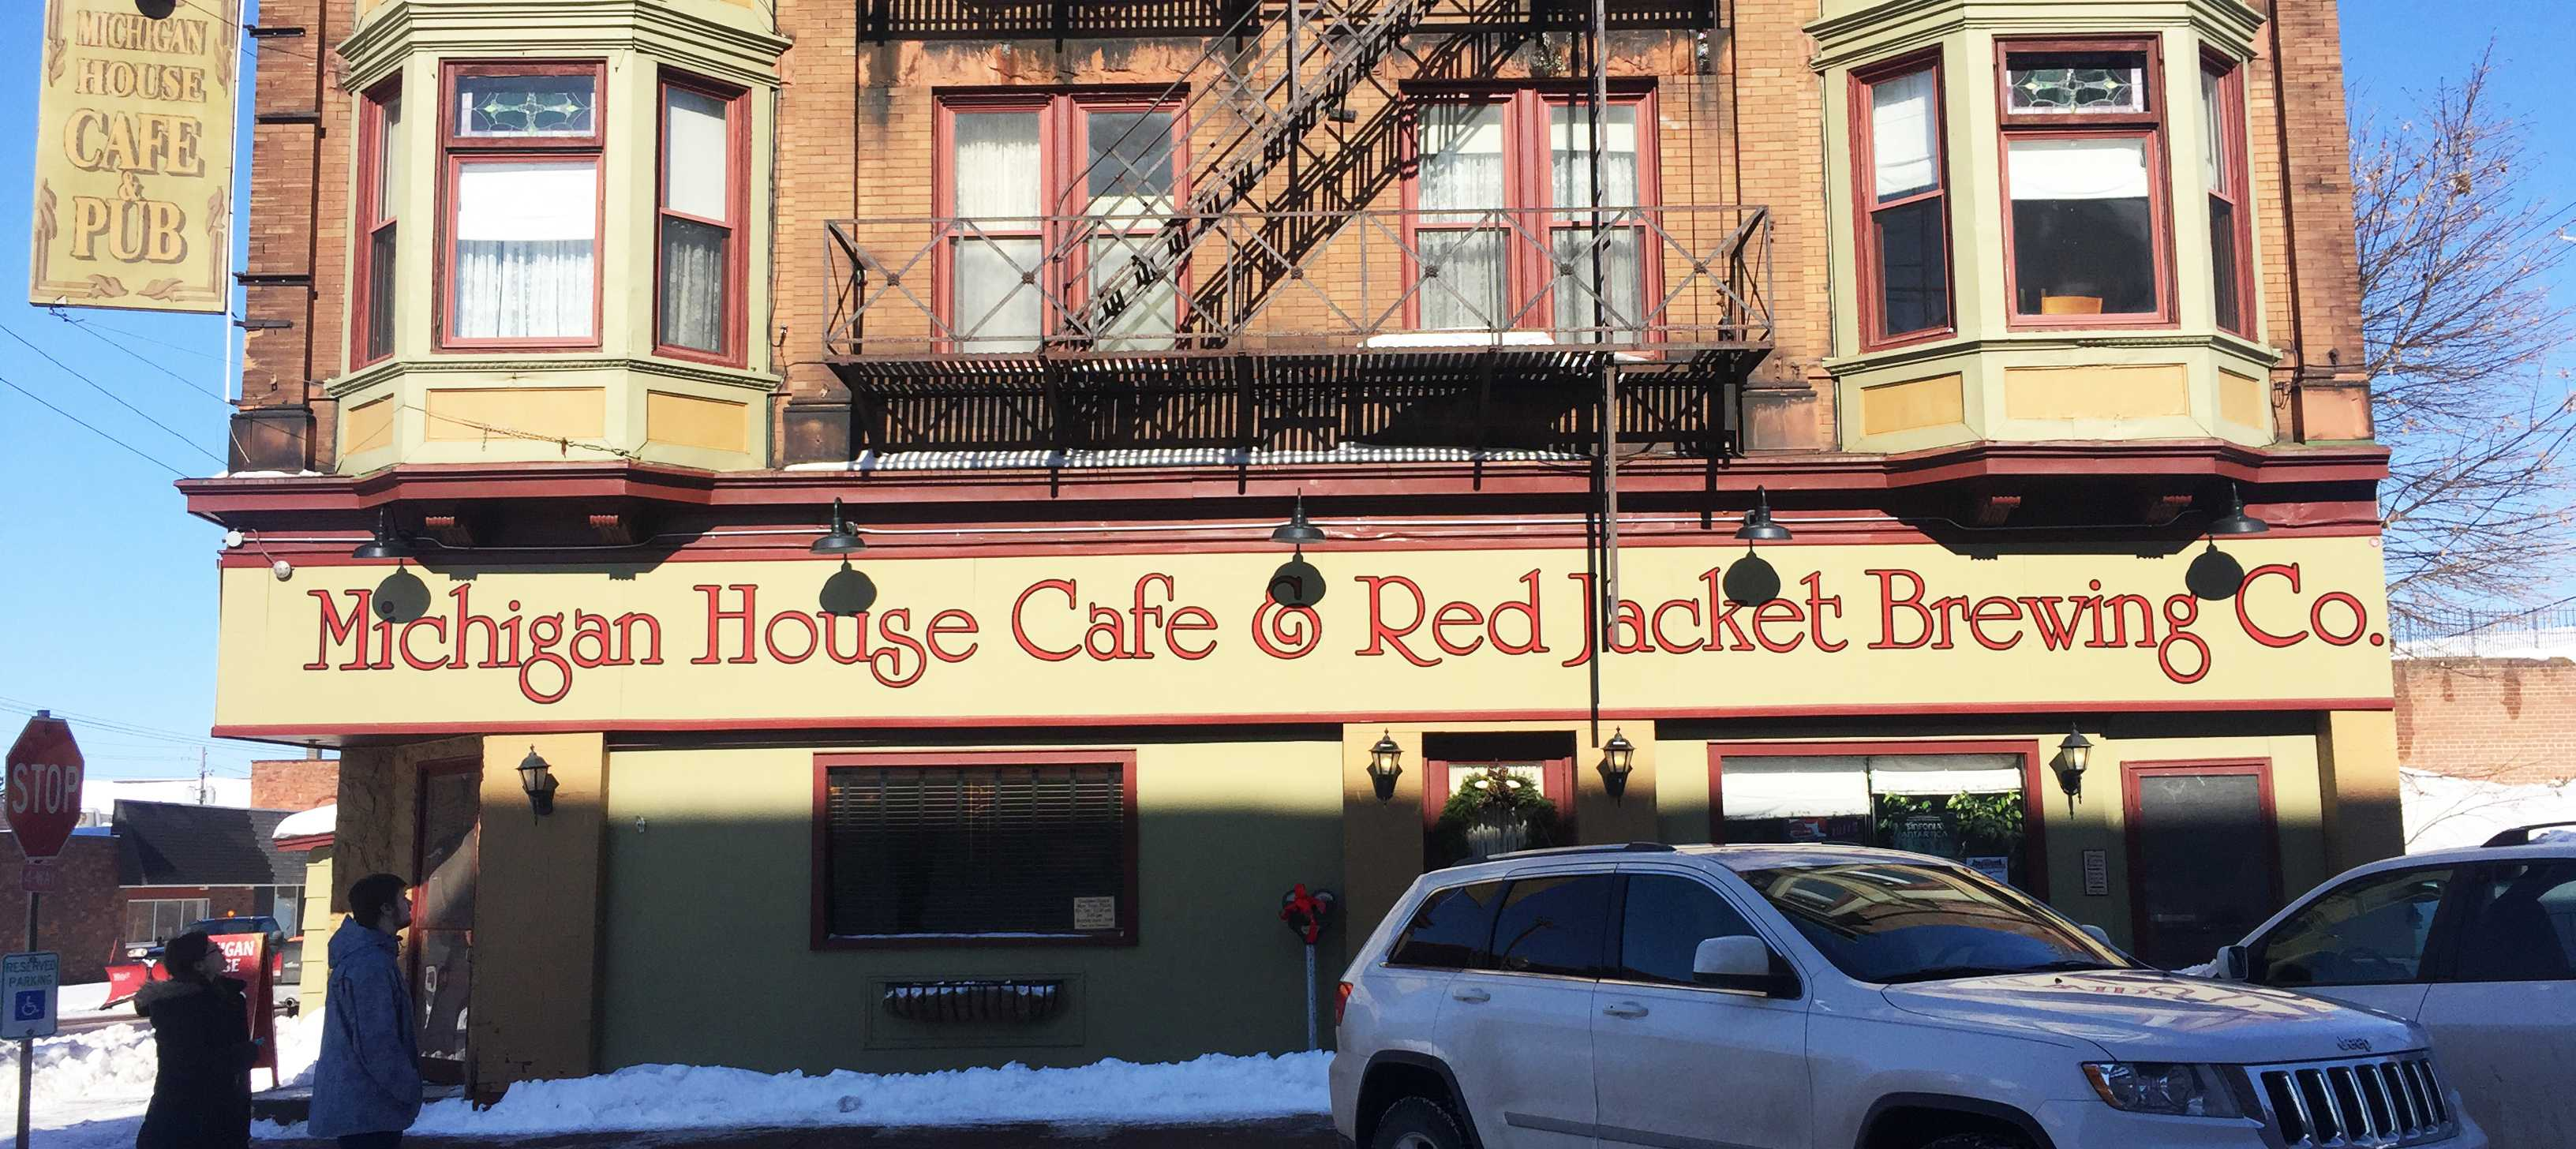 Michigan House Cafe and Red Jacket Brewing Co.